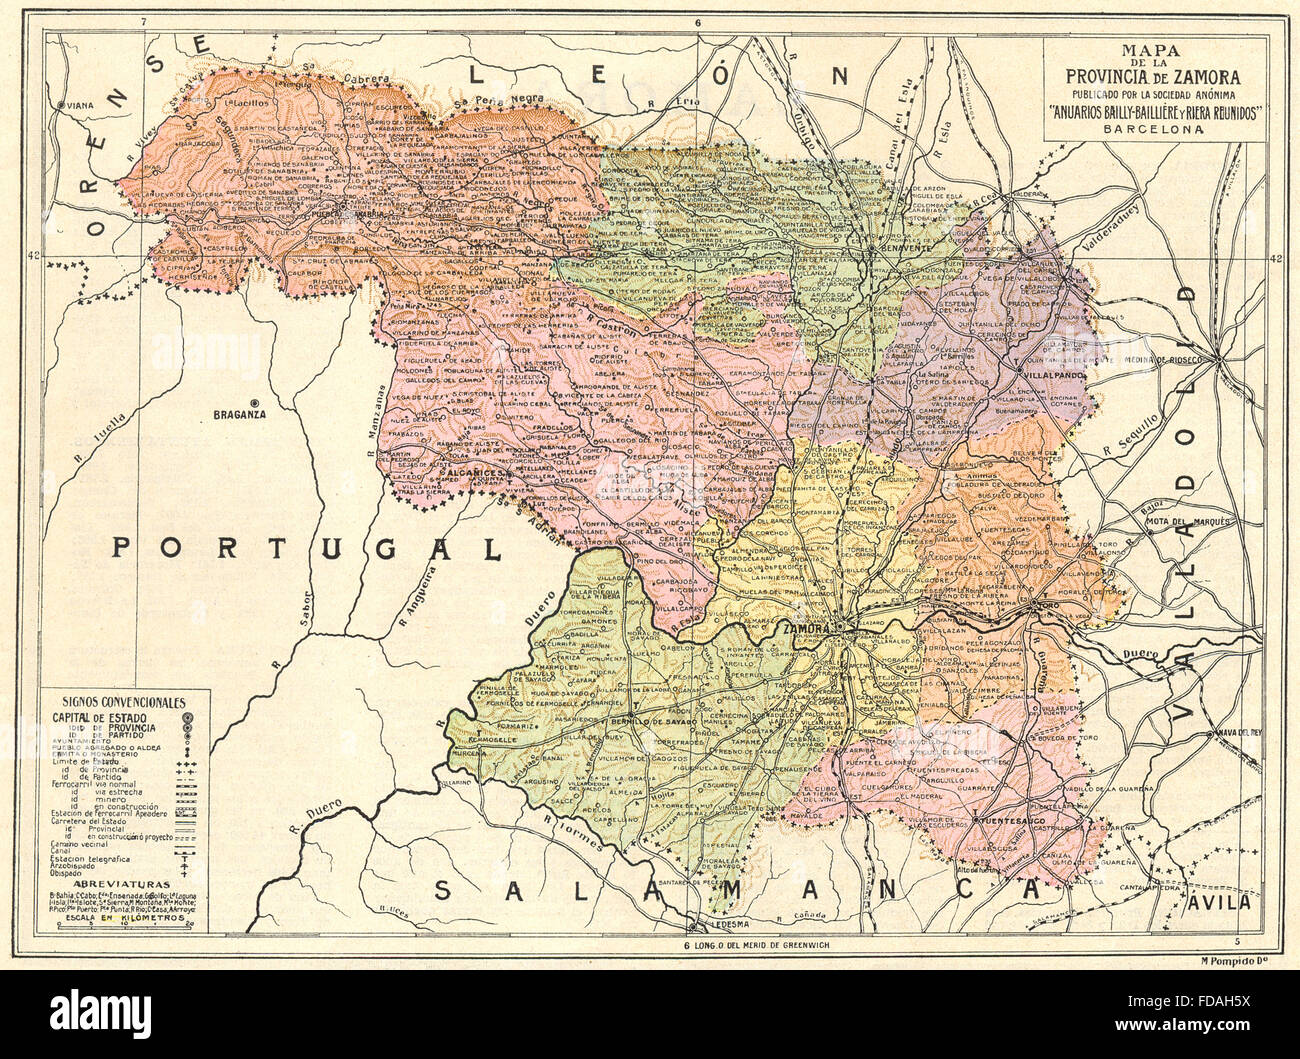 Spain Mapa De La Provincia De Zamora 1913 Stock Photo 94275382